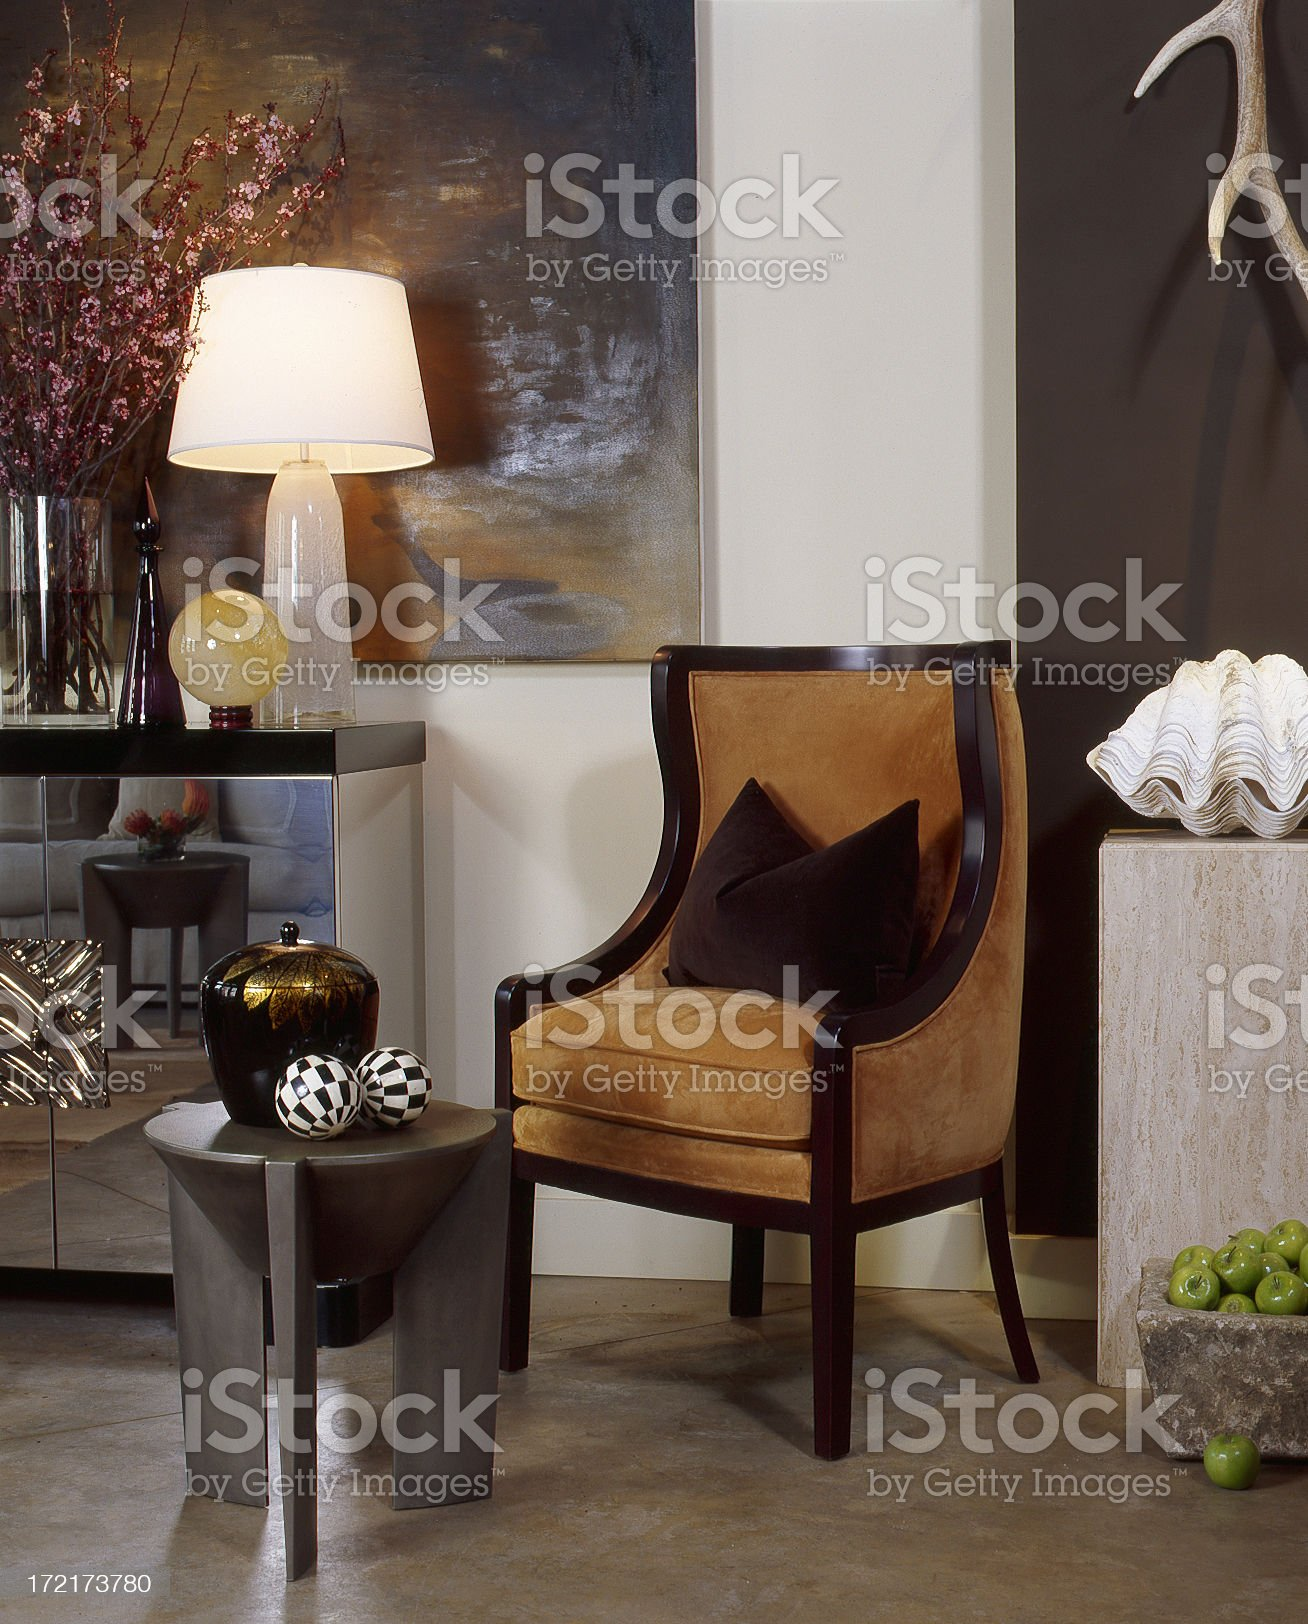 Modern Chair and Furniture royalty-free stock photo